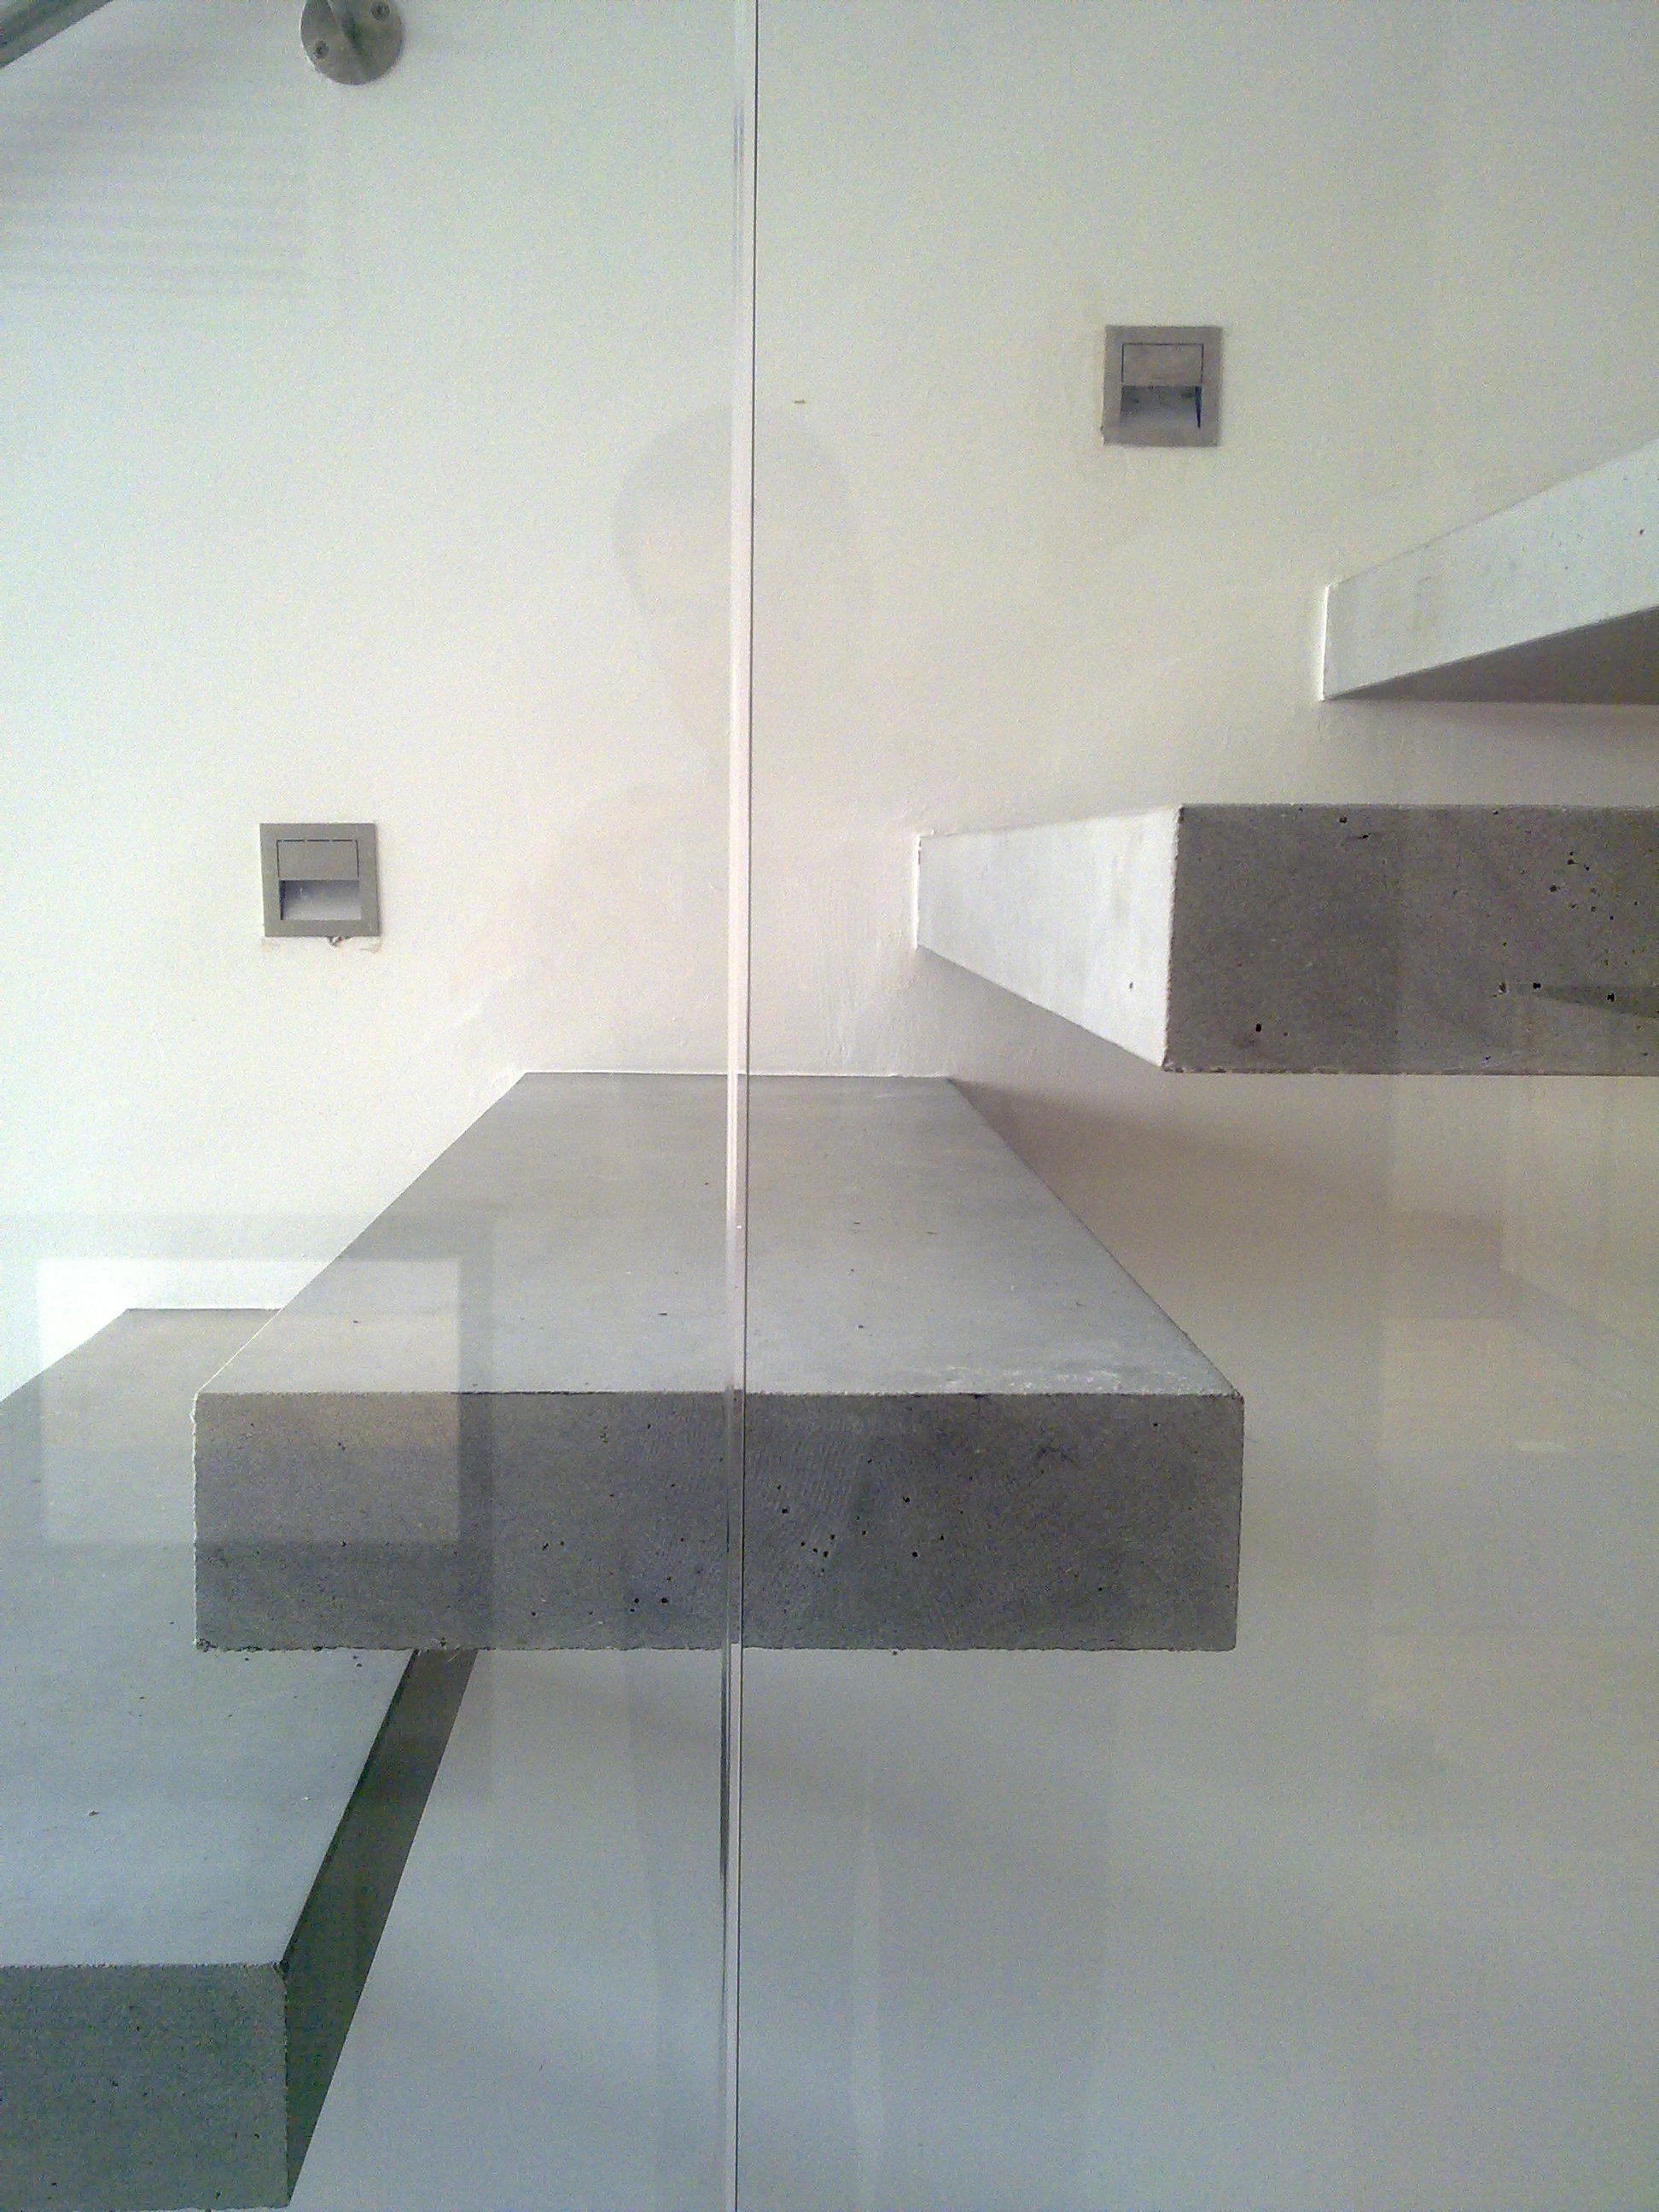 CANTILEVERED STAIRS IN CONCRETE - Staircase systems from